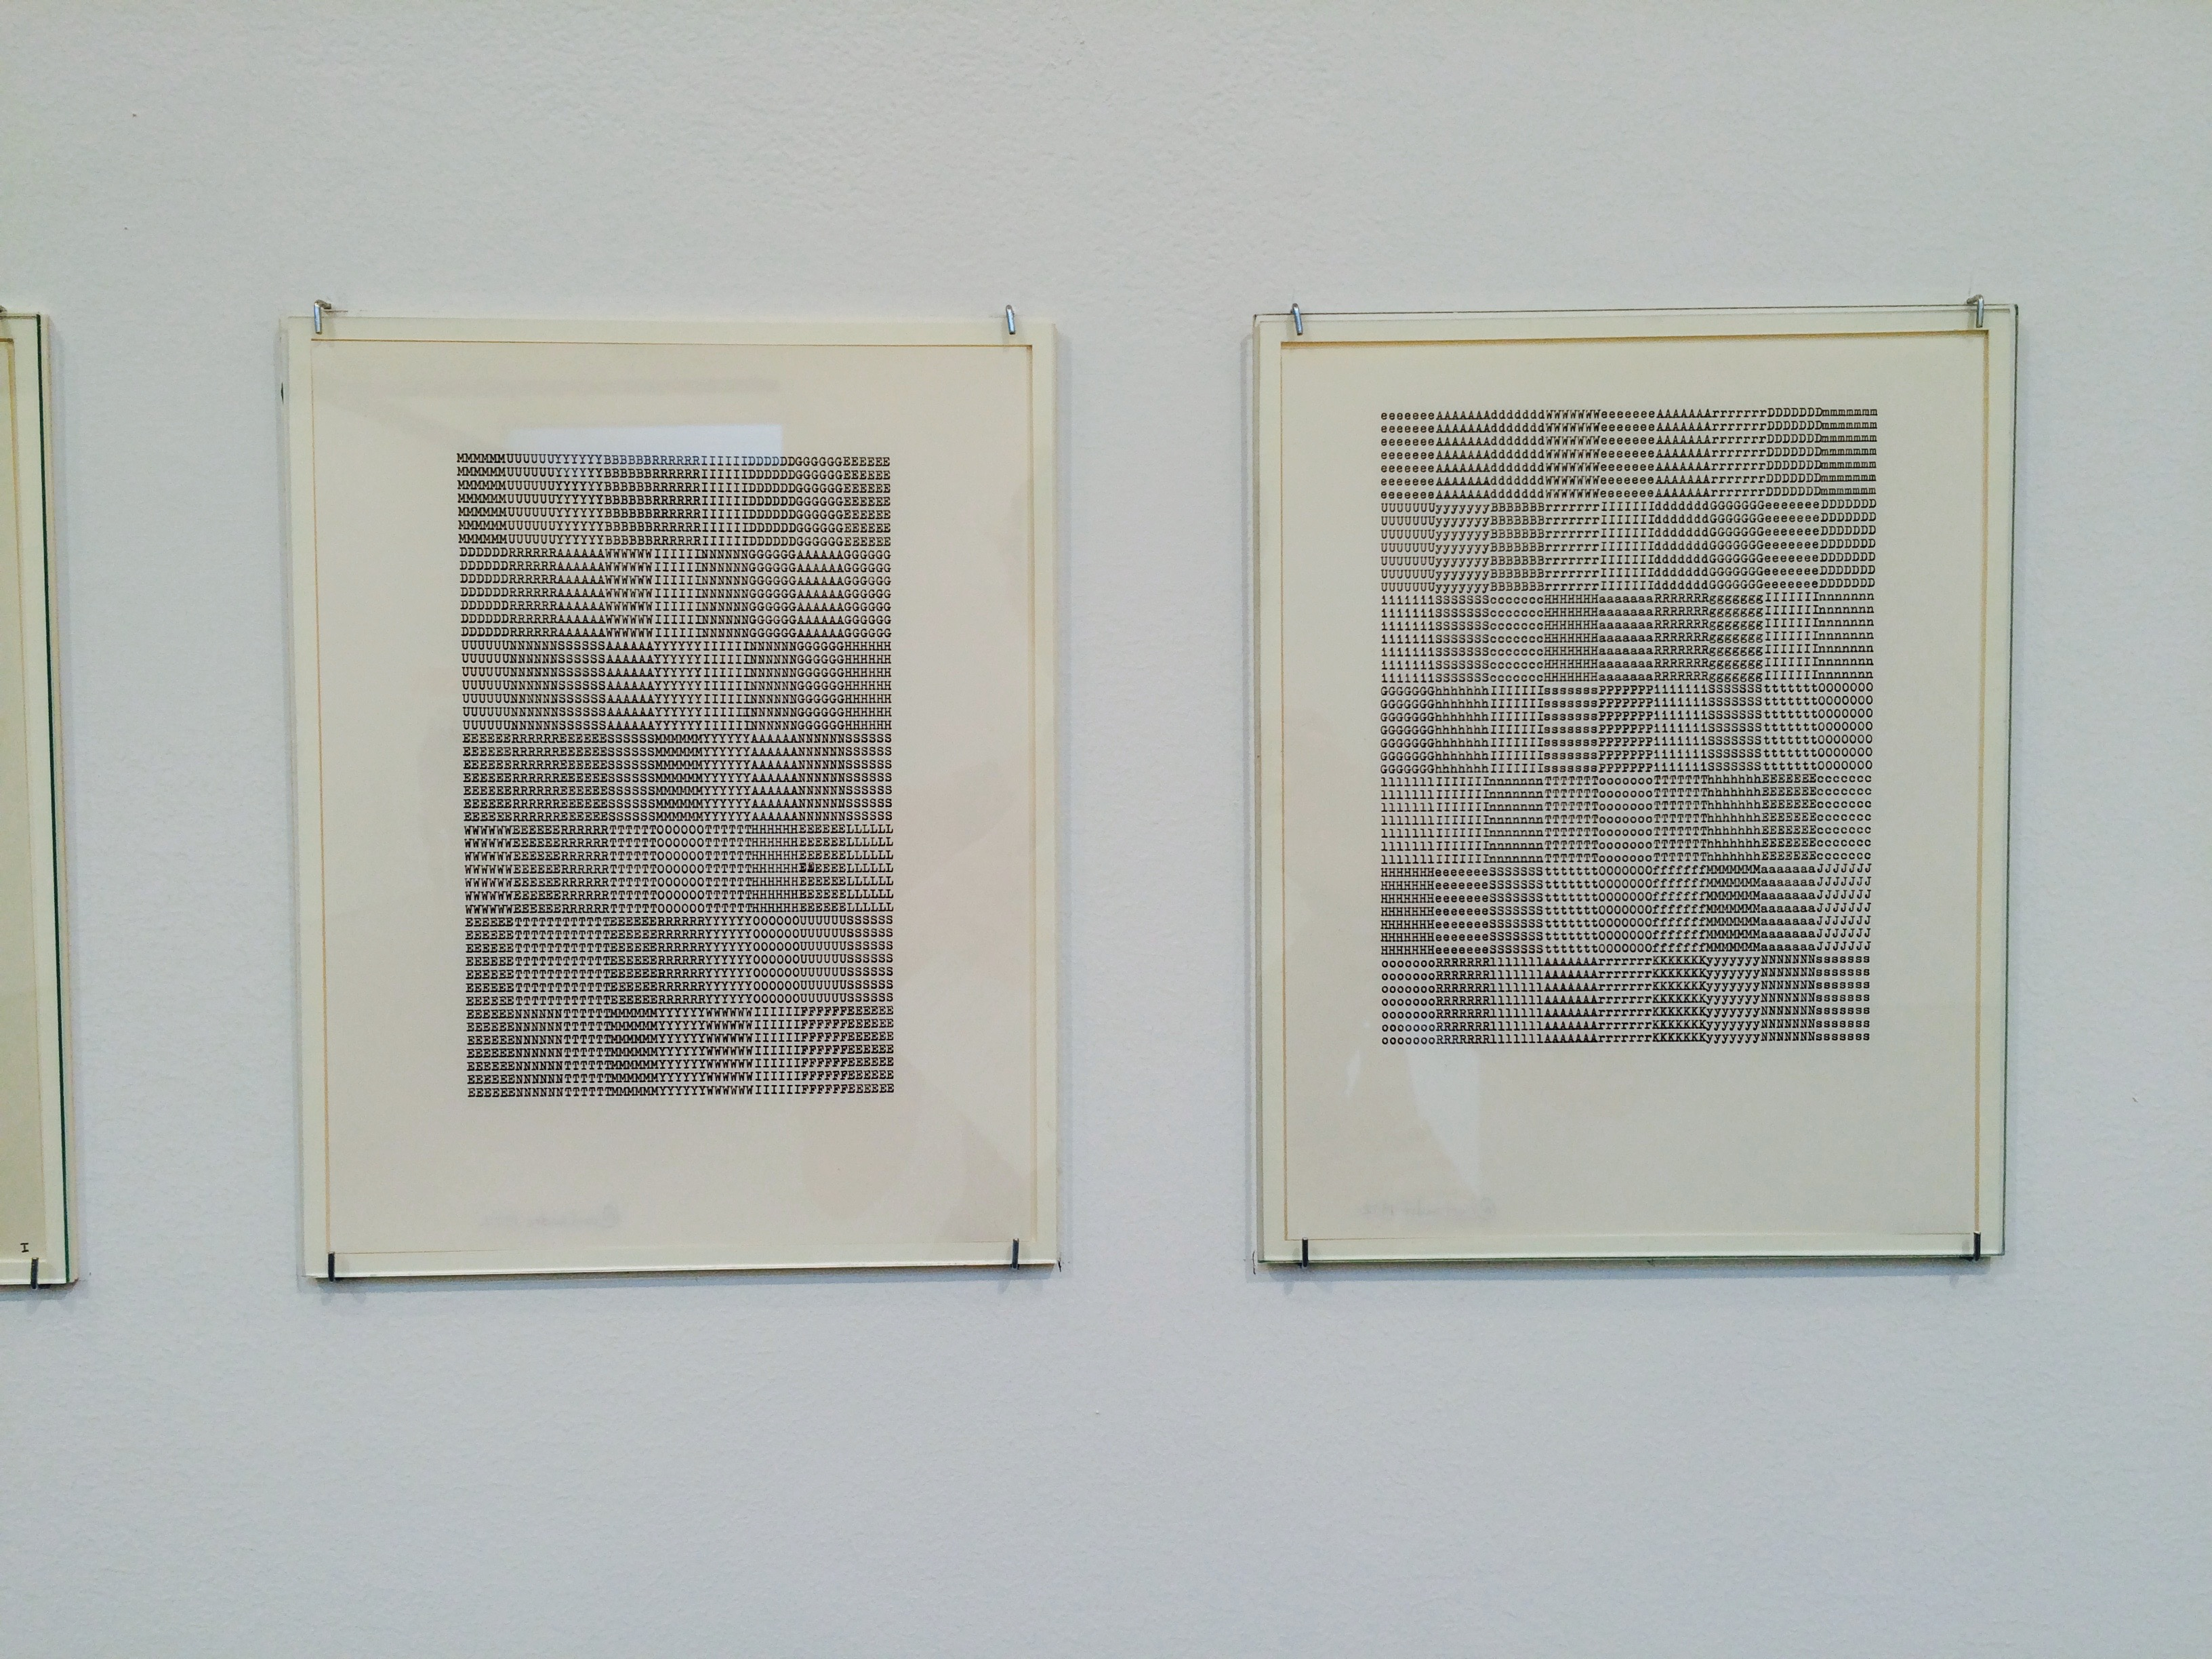 Carl Andre's typewriter drawings